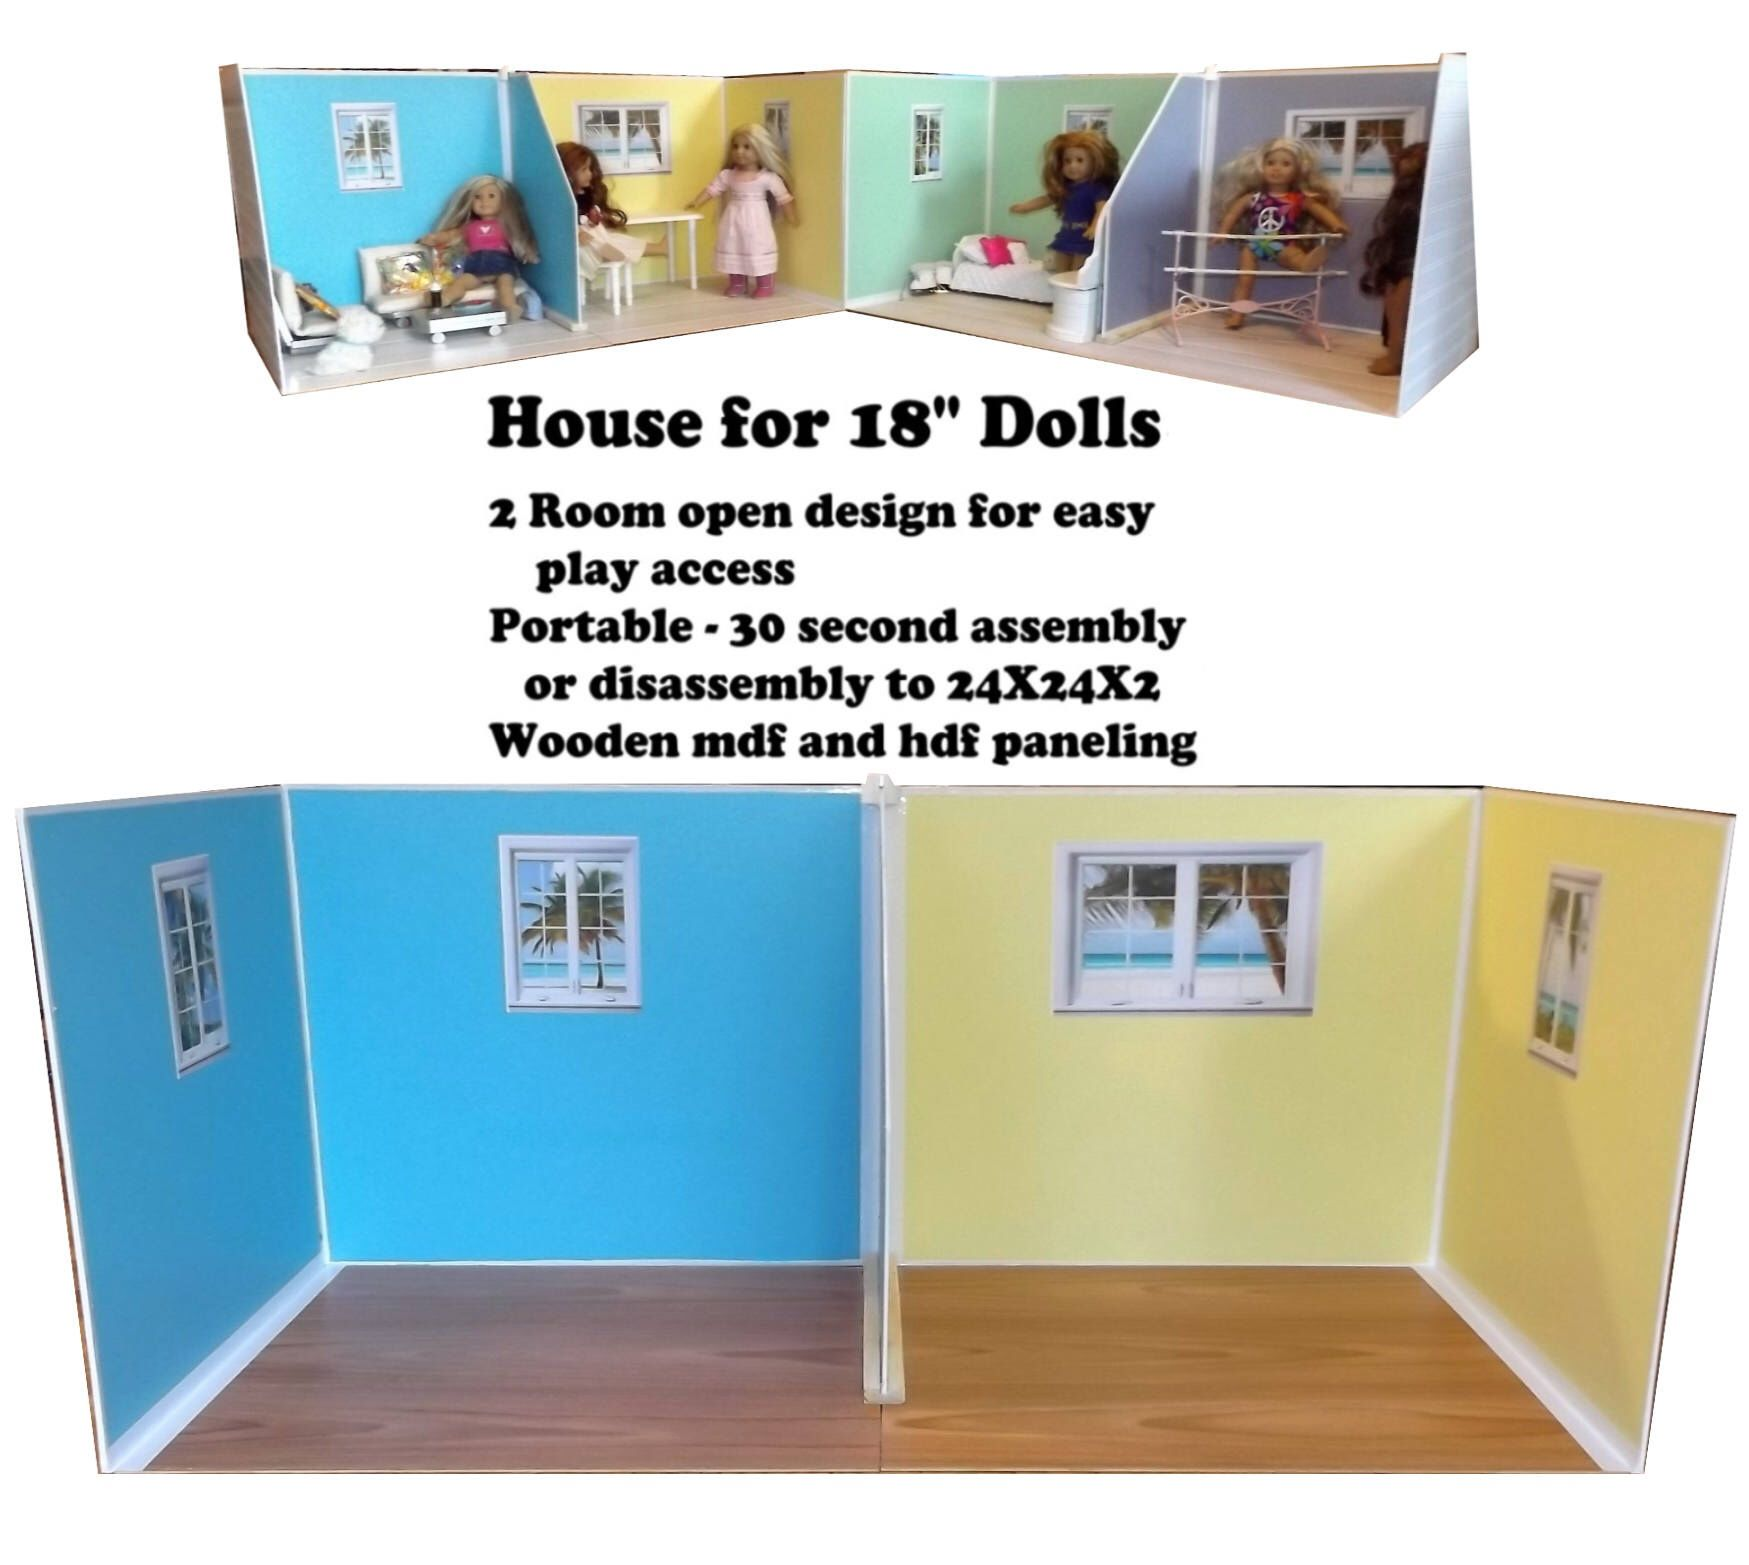 Doll House Beach Cottage Dollhouse For 18 Inch Dolls Similar